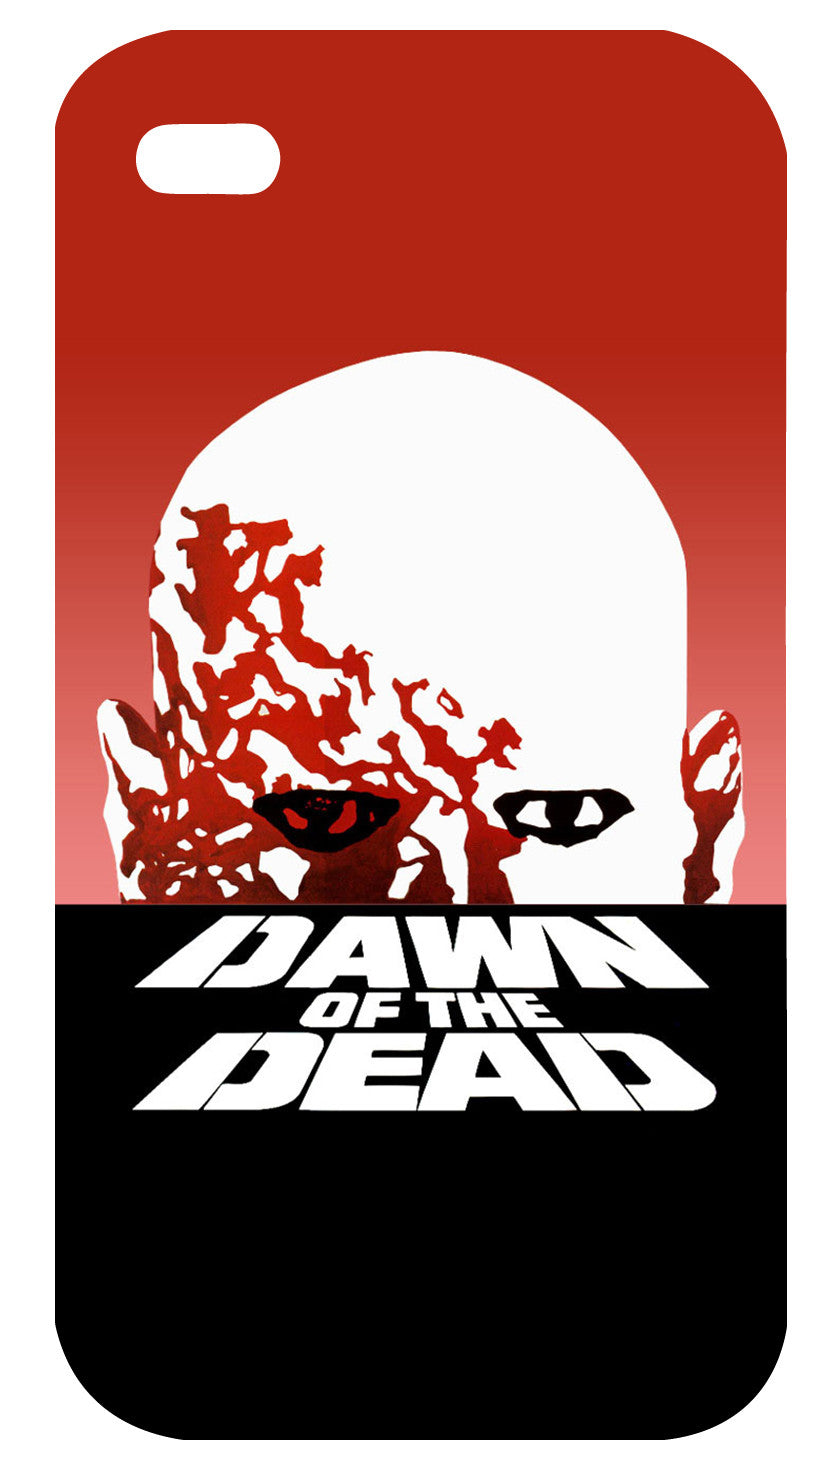 Dawn of the Dead Style A iPhone 4/4S Case